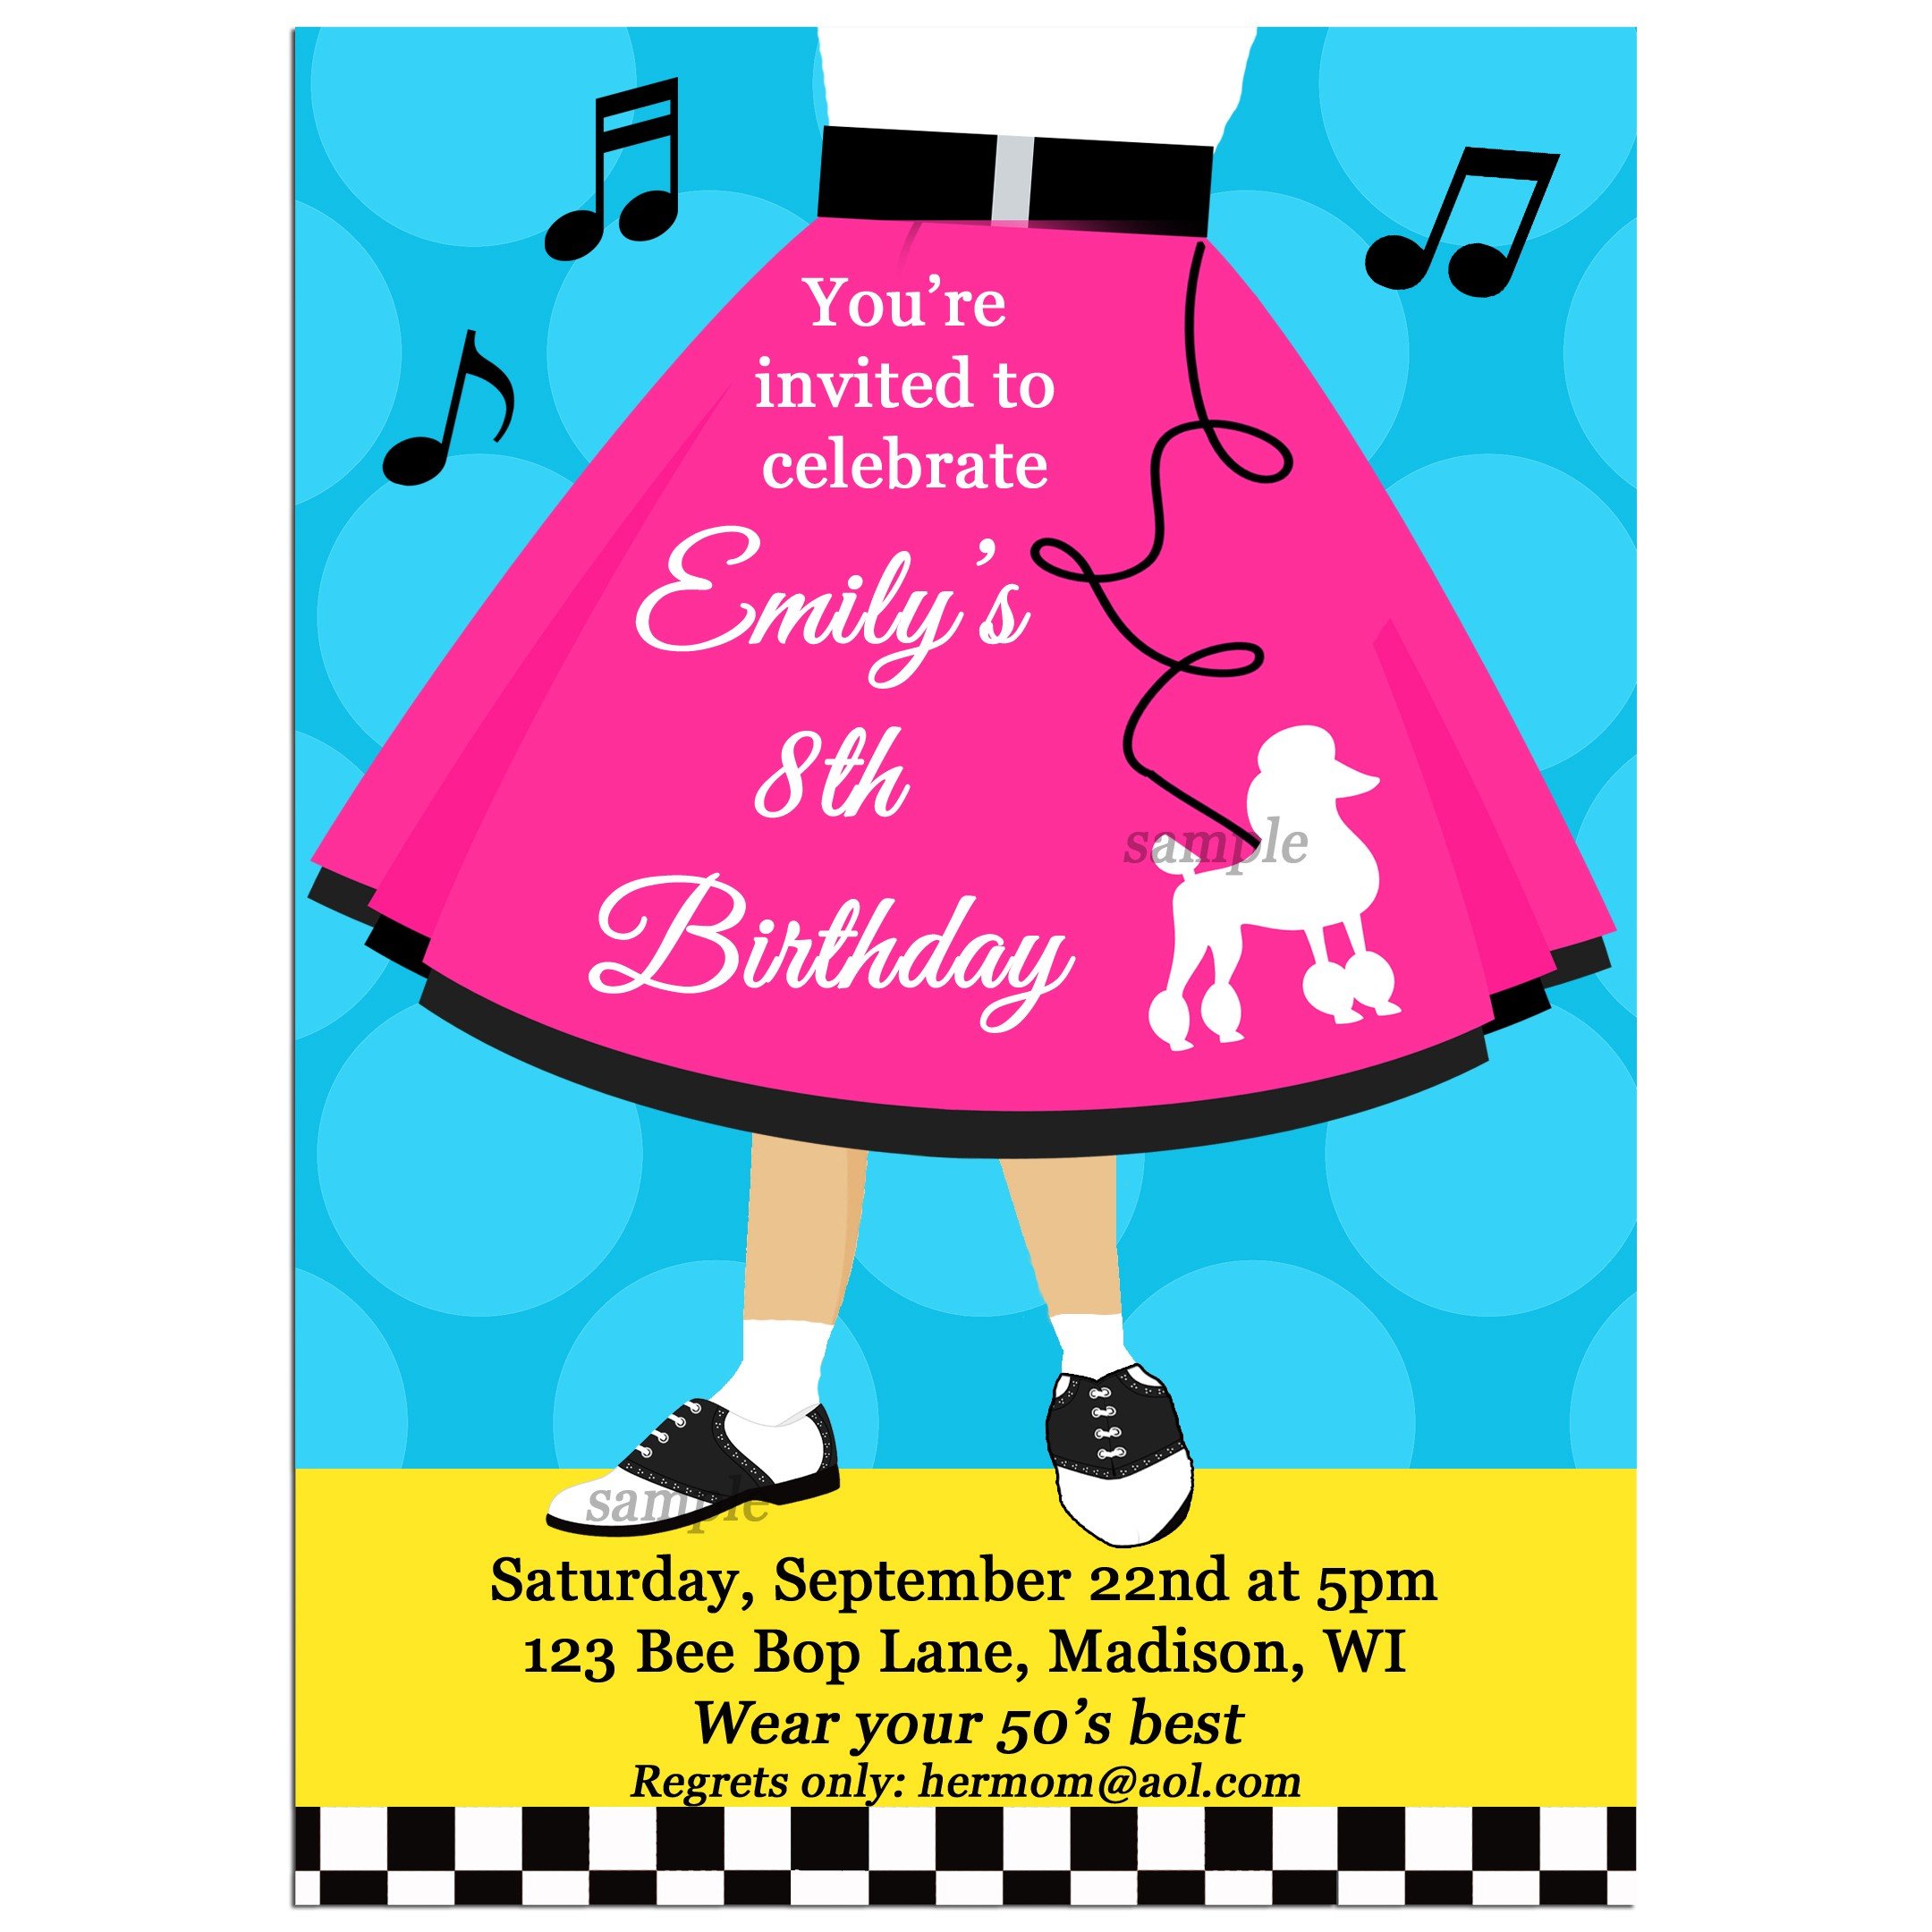 Fifties Sock Hop Party Invitation by That Party Chick - Poodle Skirt